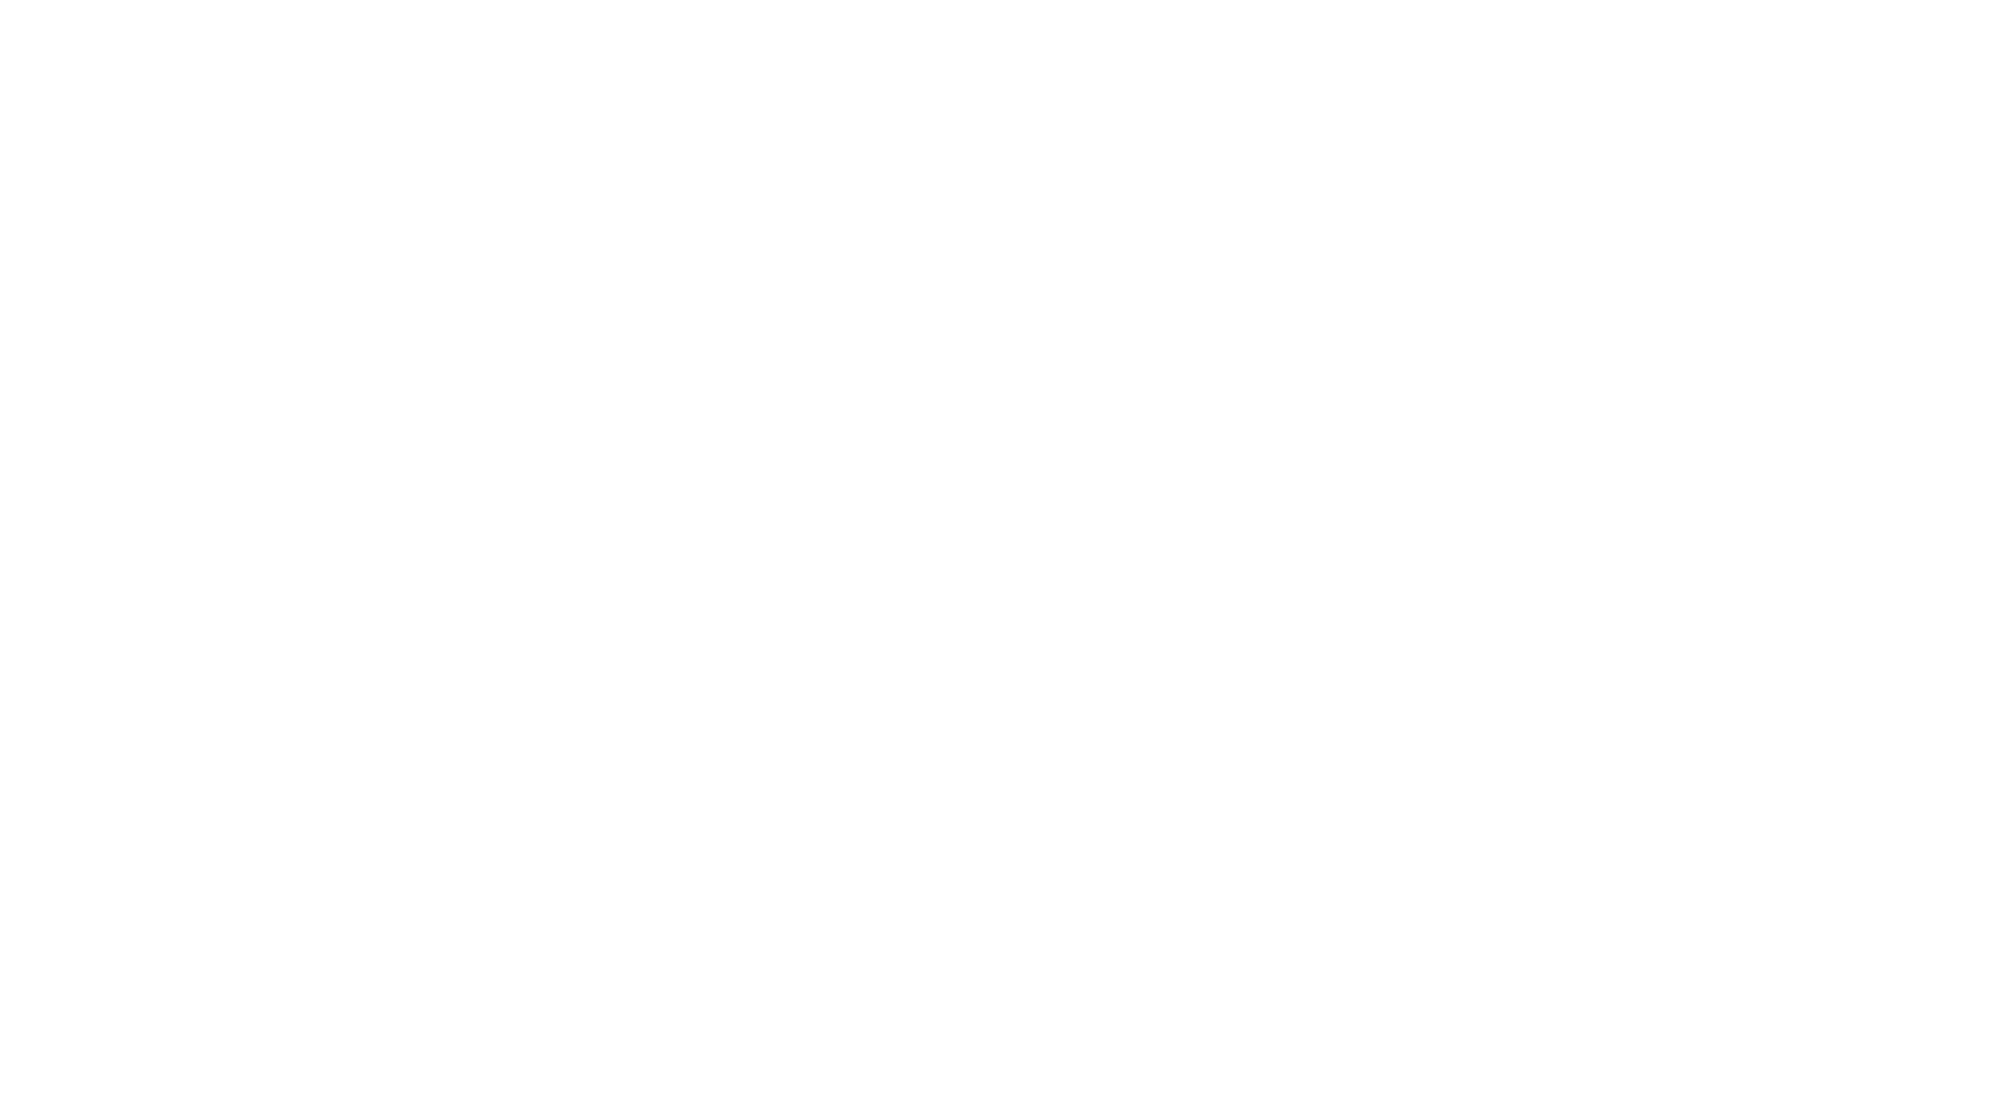 What is your FREEDOM?/OUR CONCEPT